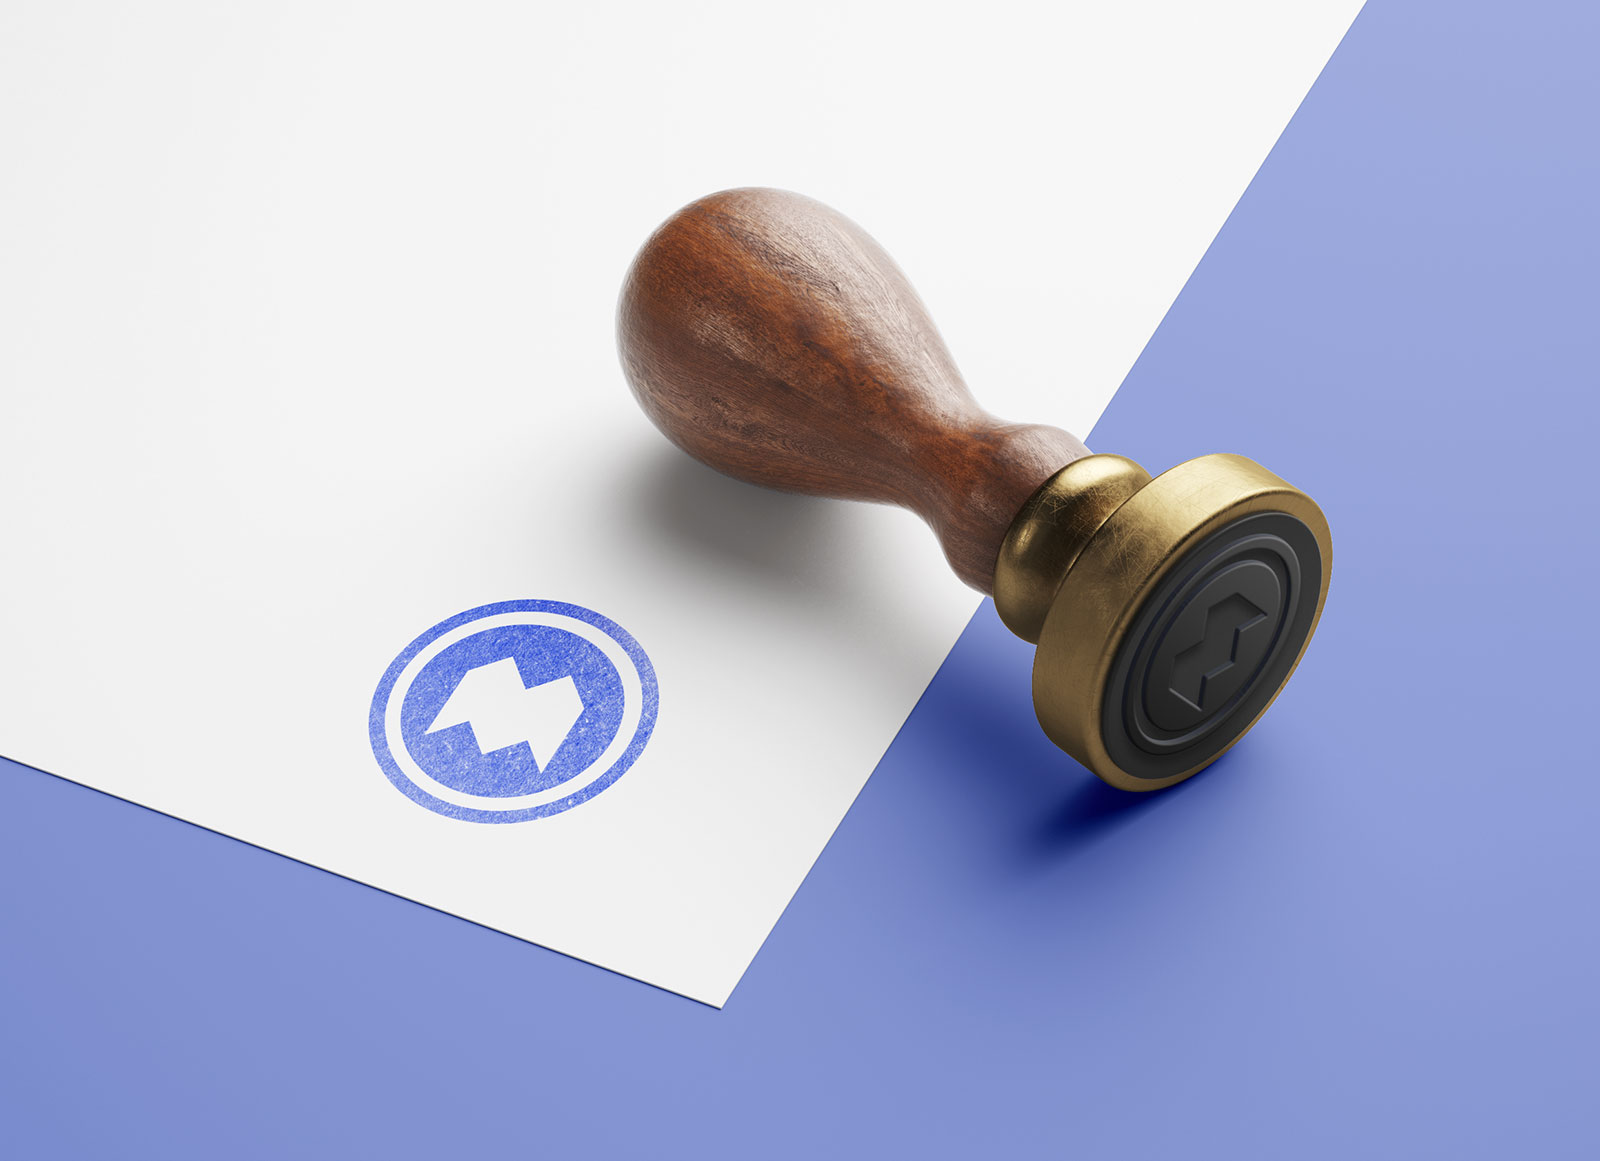 Free-Wooden-Round-Stamp-Mockup-PSD